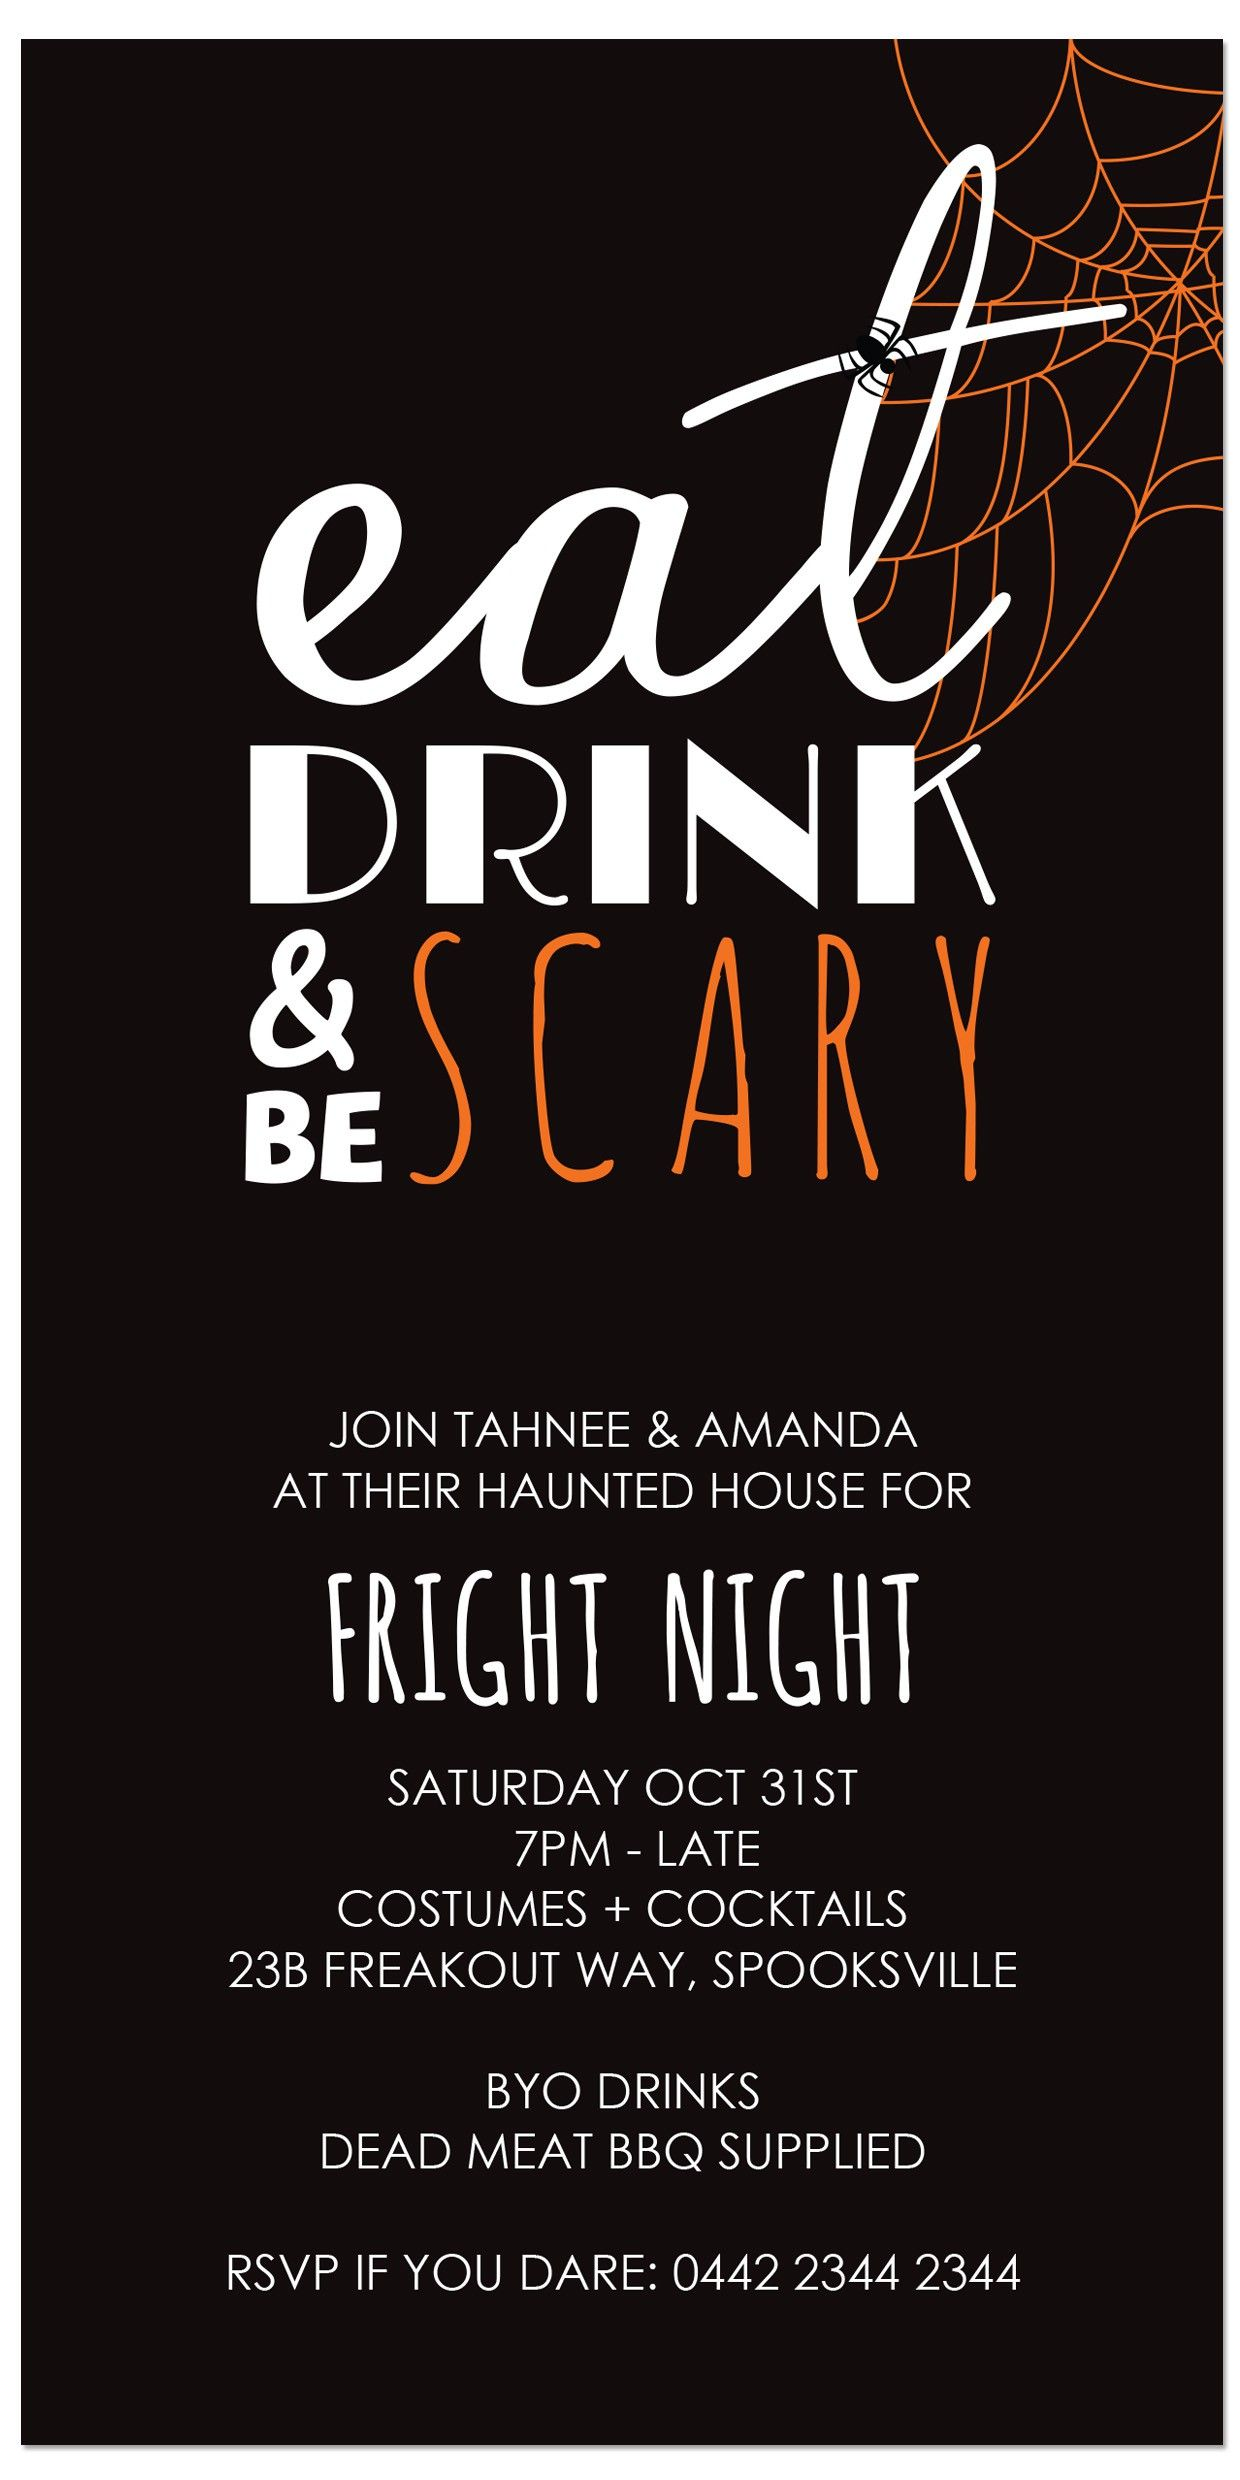 Eat, Drink & Be SCARY! - Halloween invitations from only $1 each ...